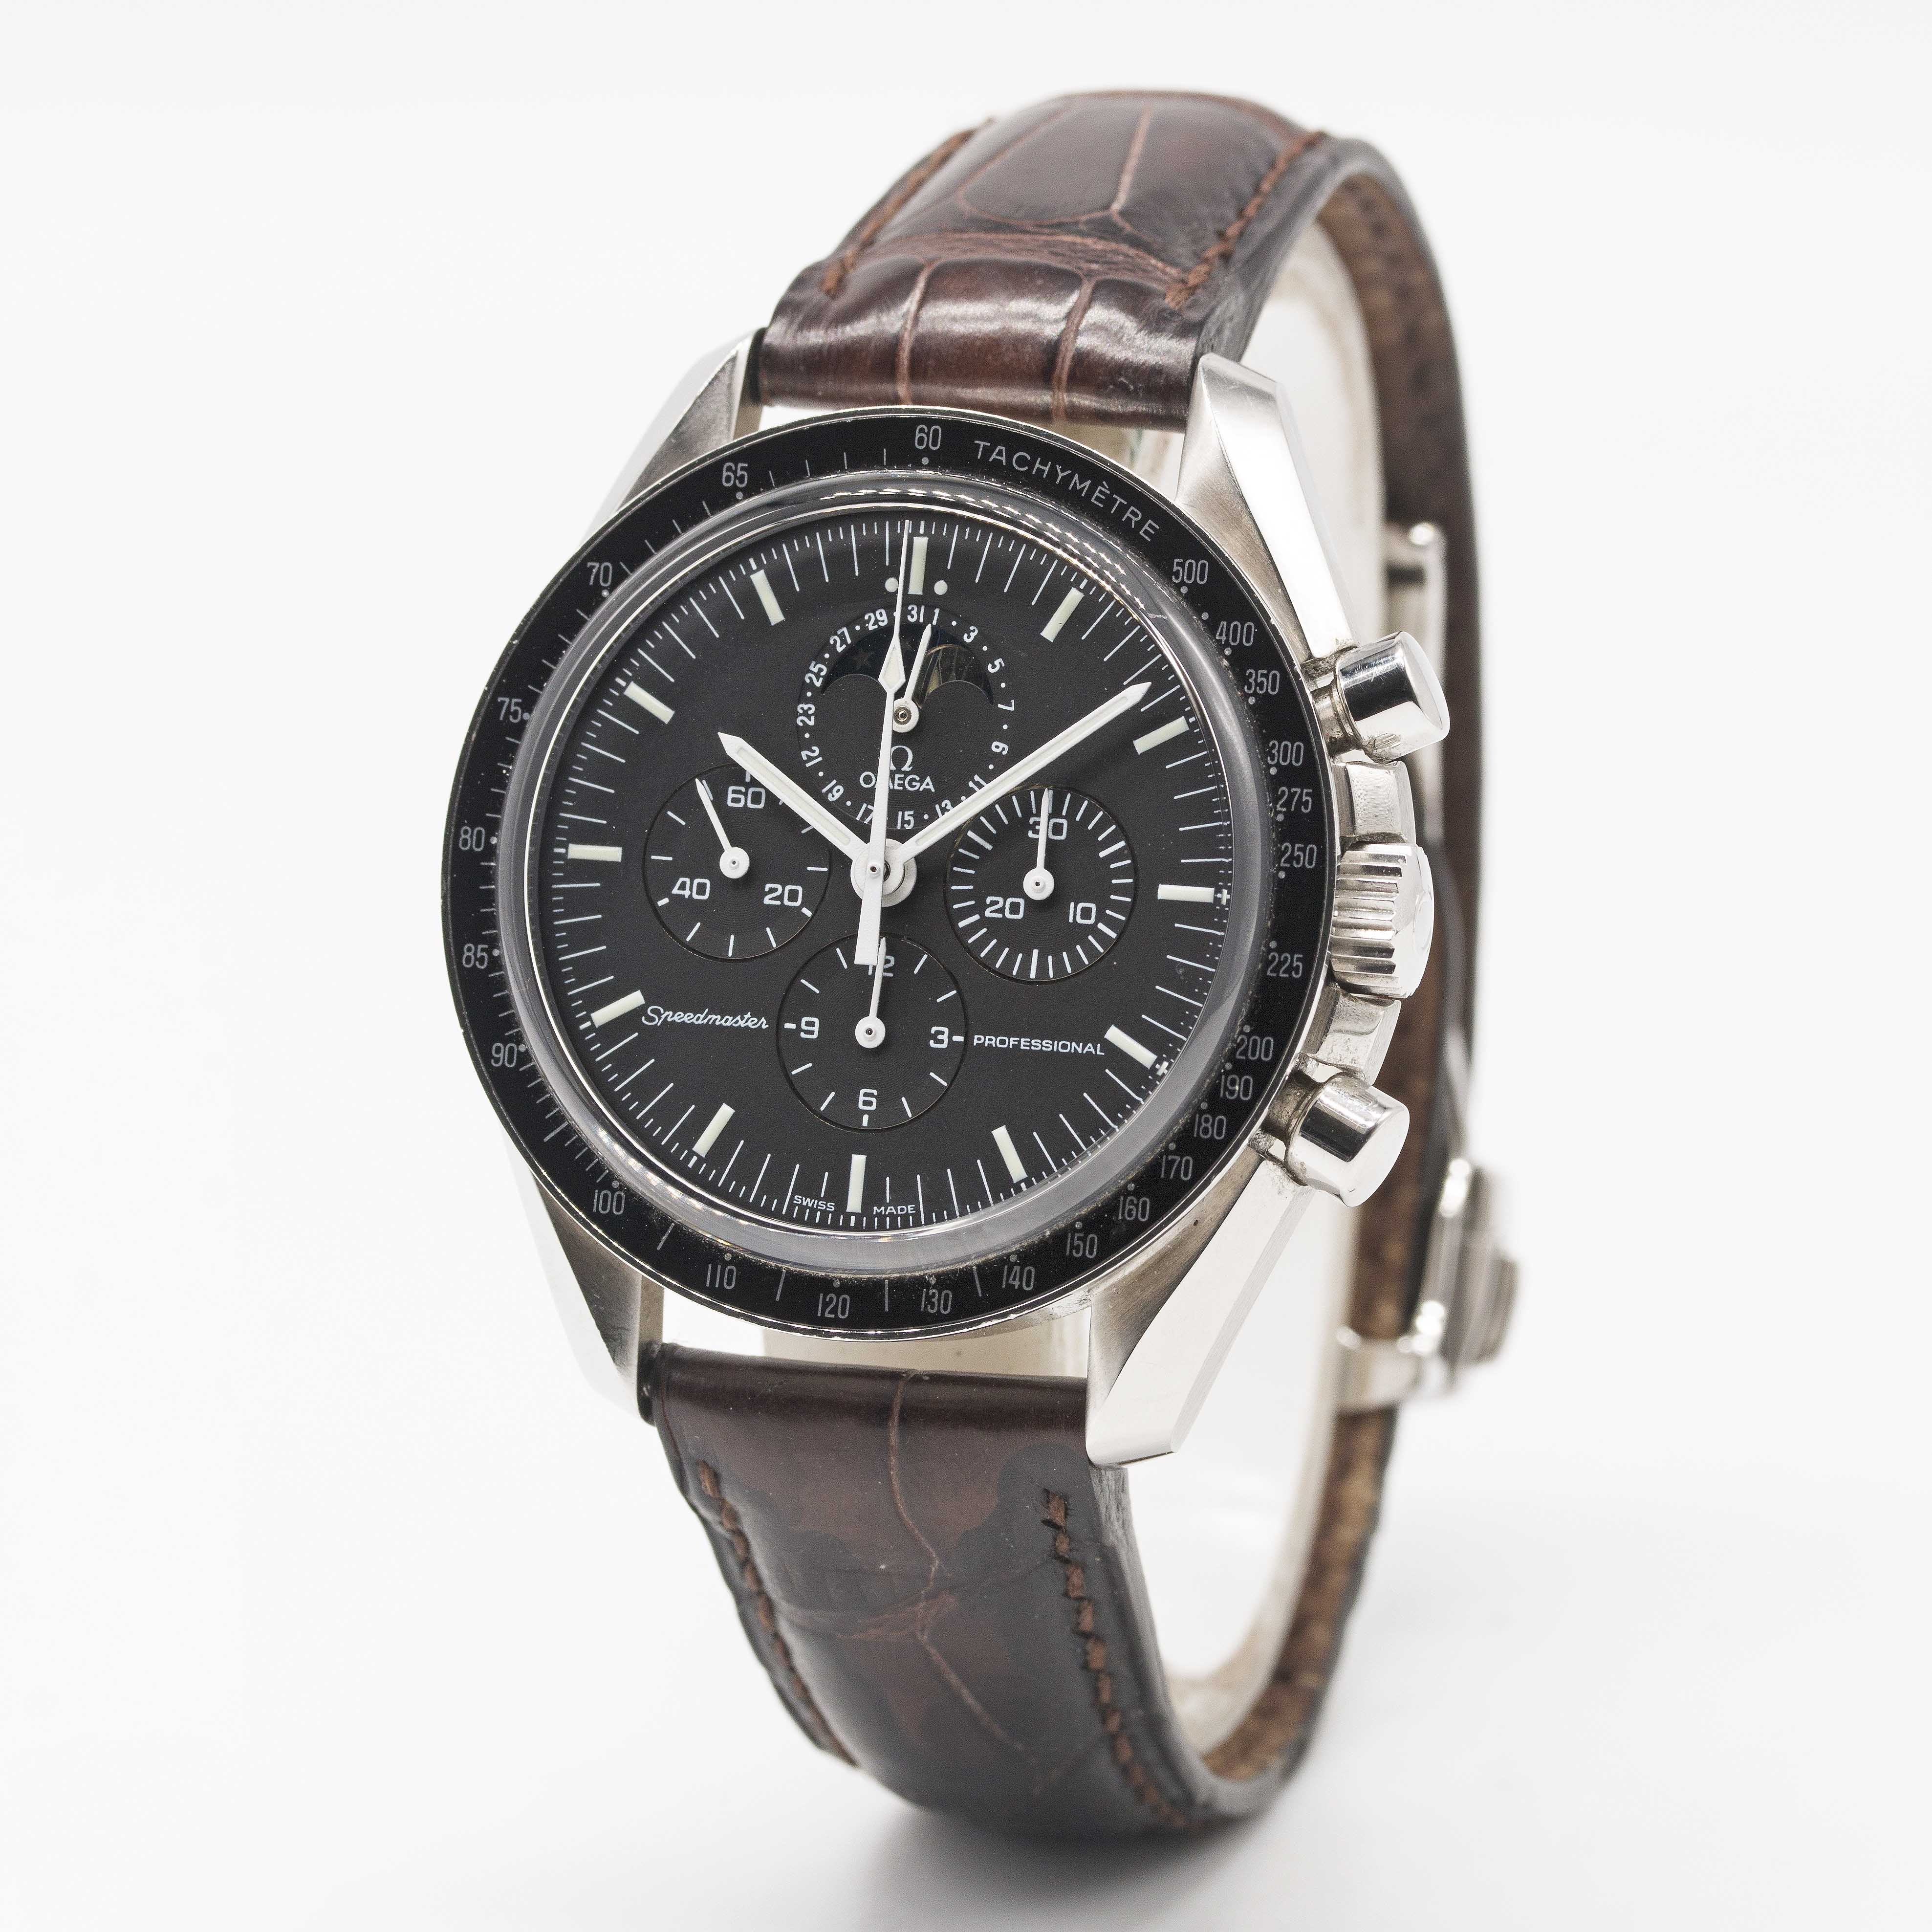 Lot 15 - A GENTLEMAN'S STAINLESS STEEL OMEGA SPEEDMASTER PROFESSIONAL MOONPHASE CHRONOGRAPH WRIST WATCH CIRCA